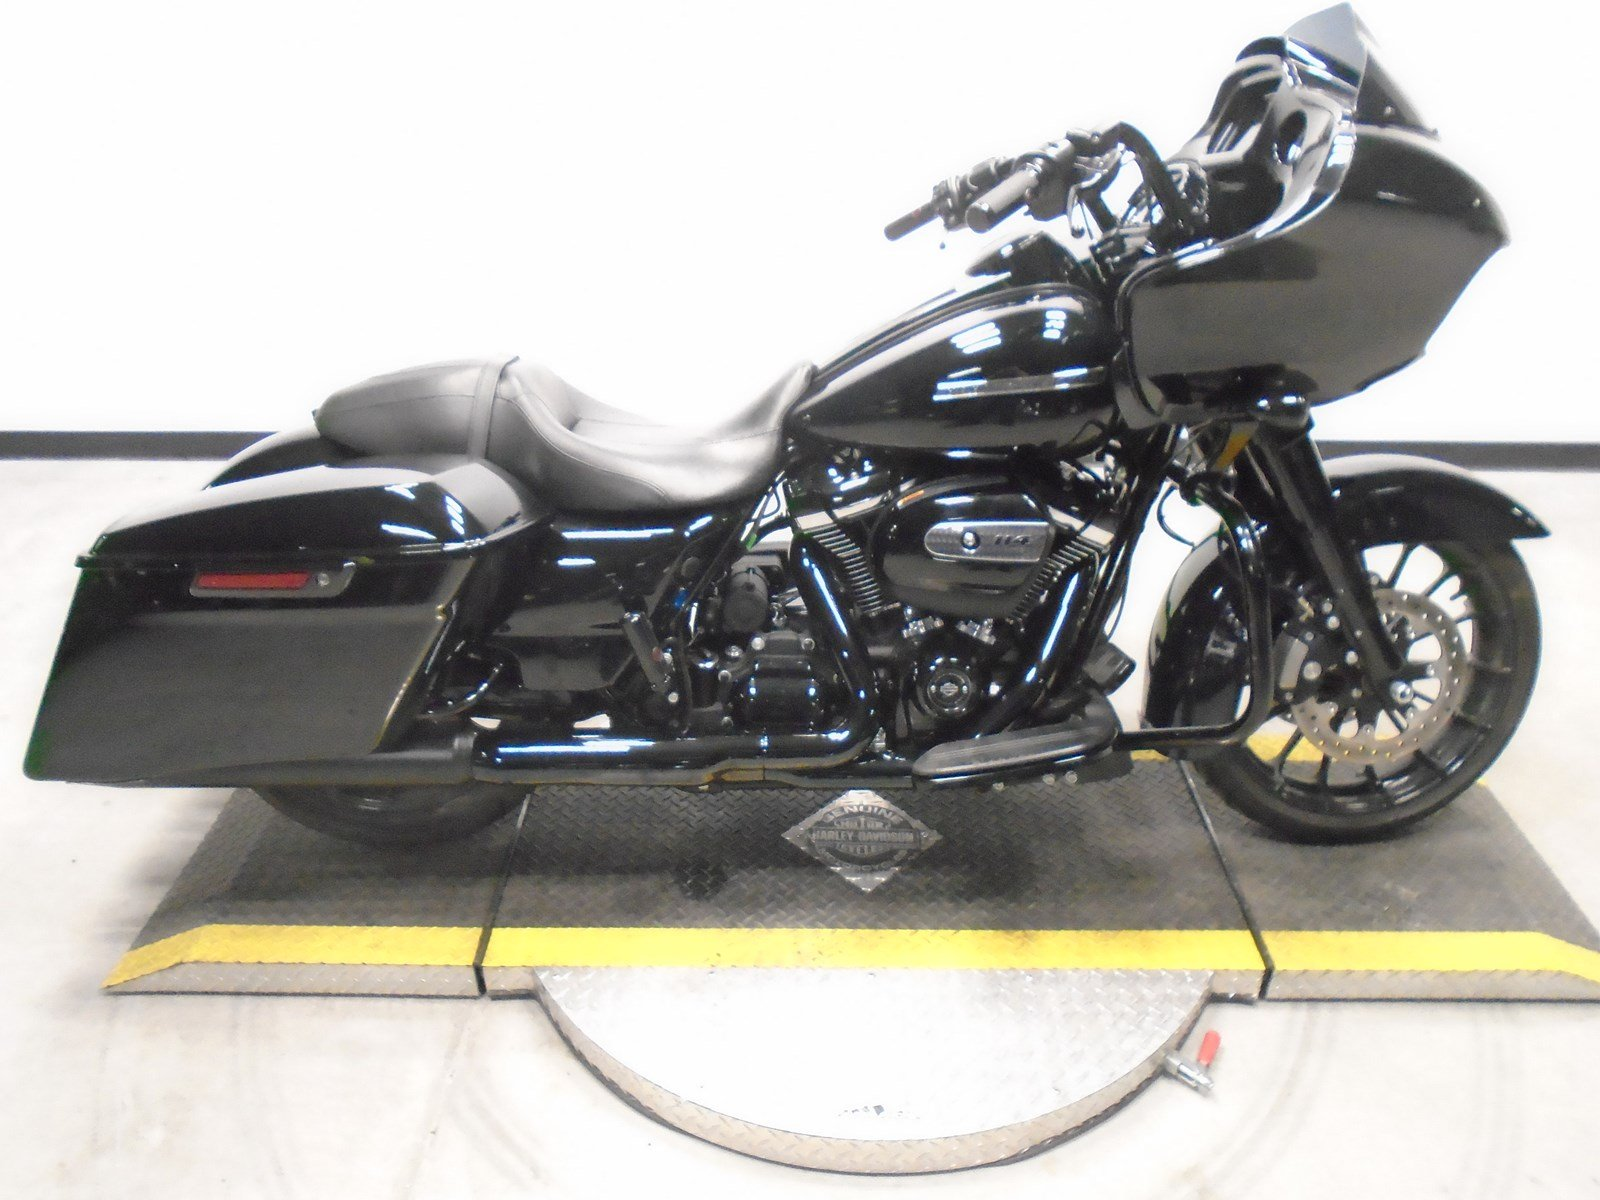 Pre-Owned 2019 Harley-Davidson Road Glide Special FLTRXS